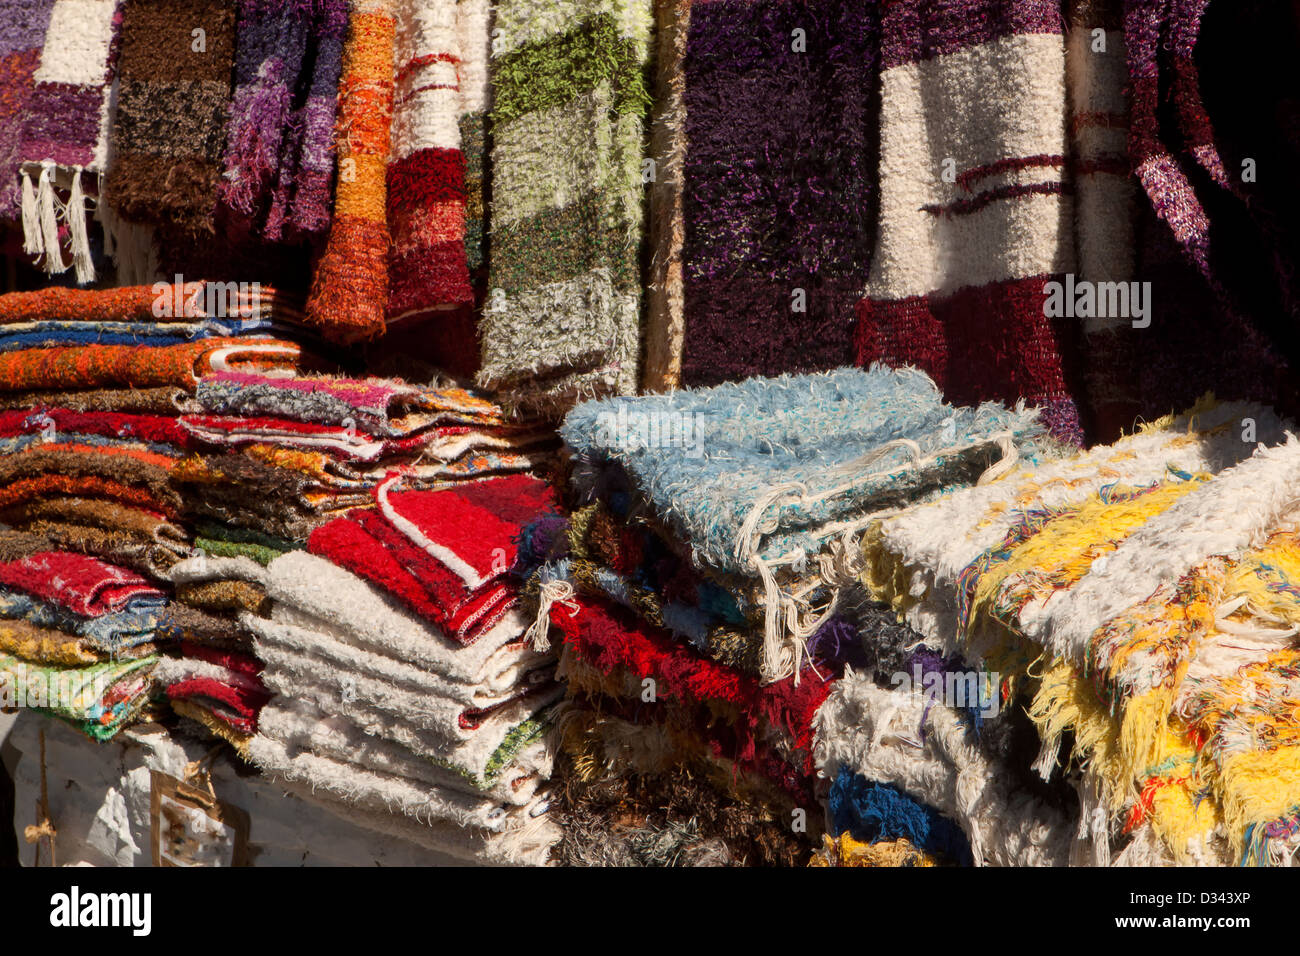 Carpets , rugs and blankets. - Stock Image